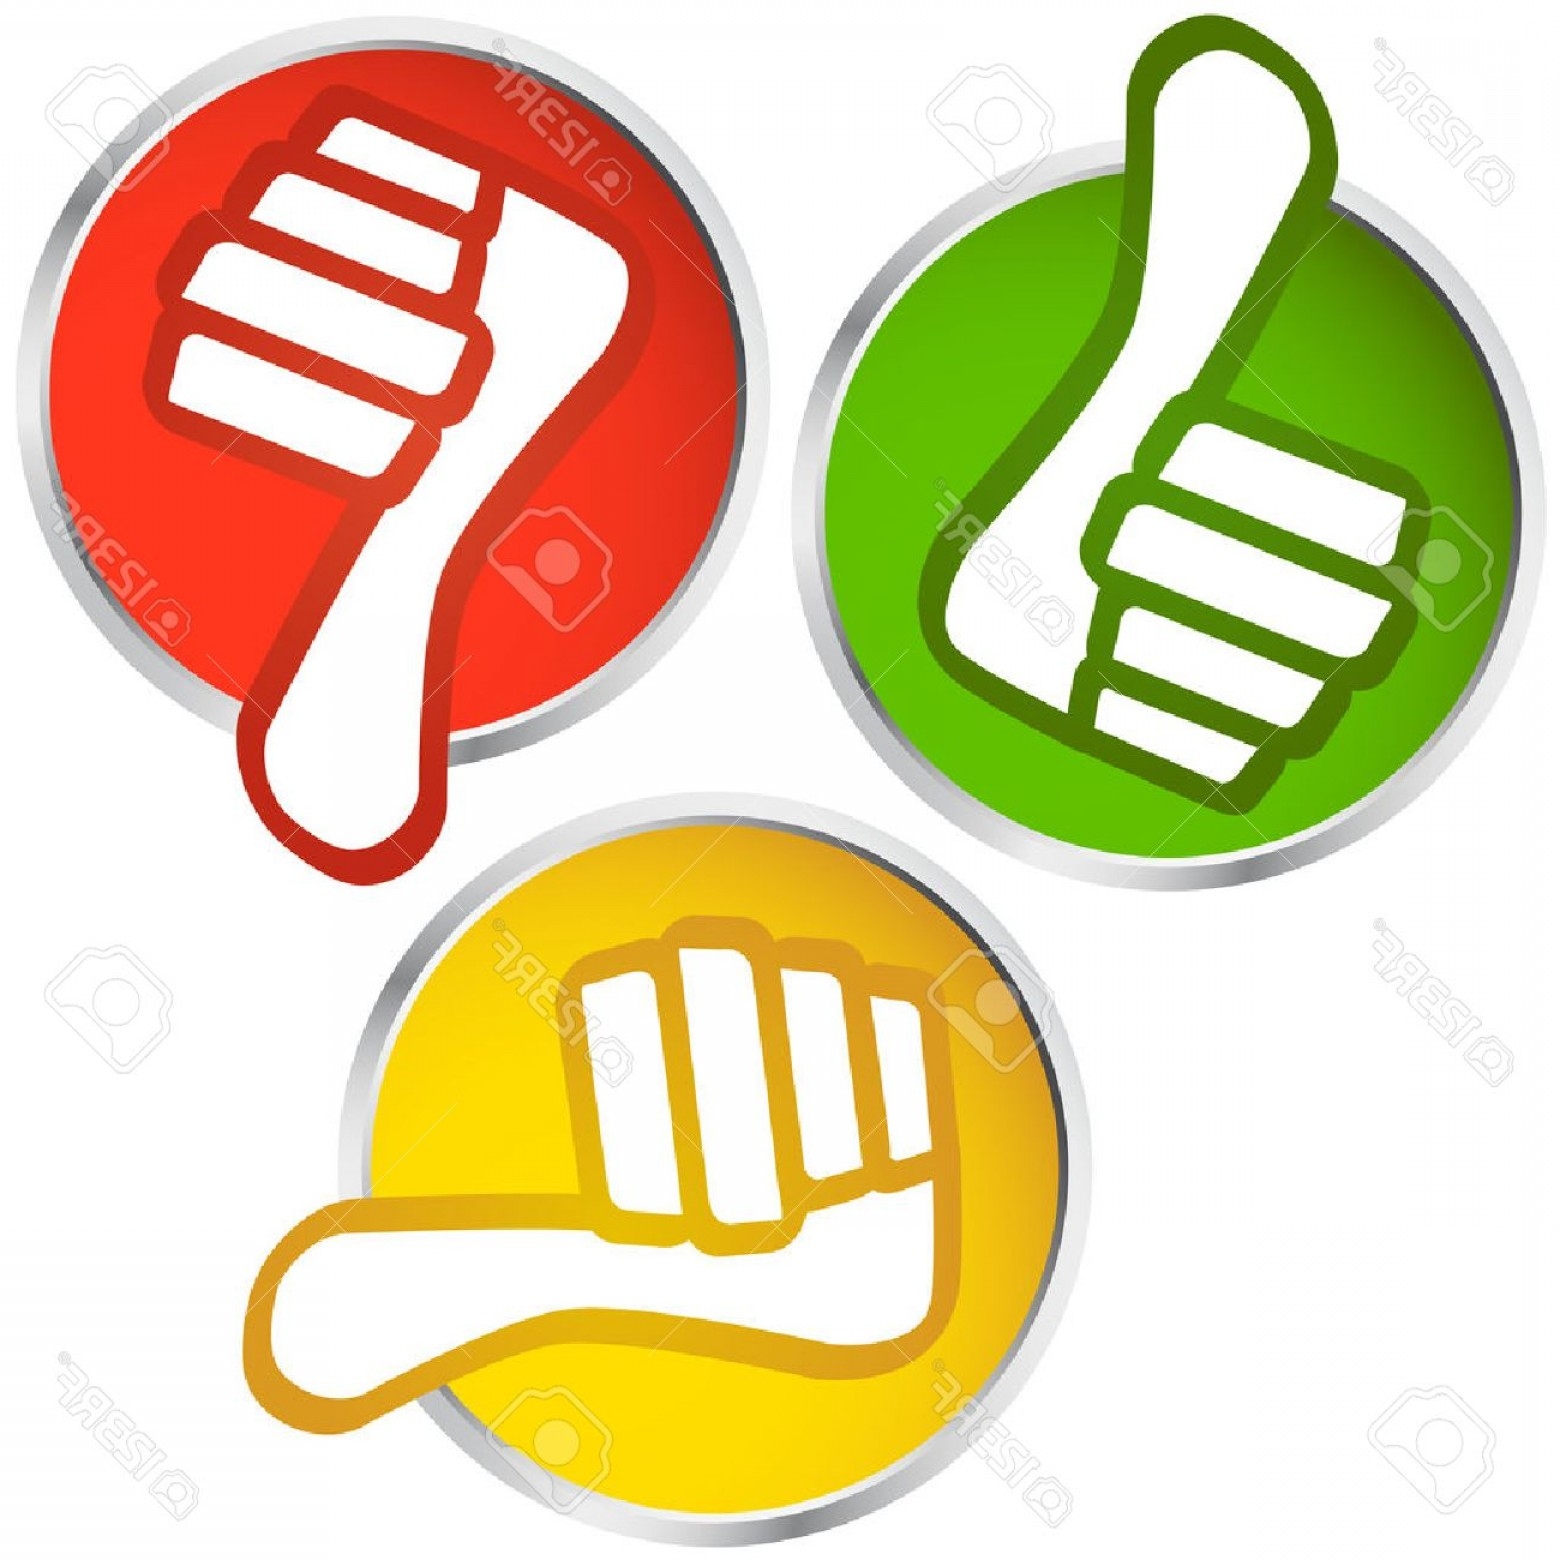 Vector Thumbs Up Down: Photostock Vector Thumbs Up Thumbs Down Buttons